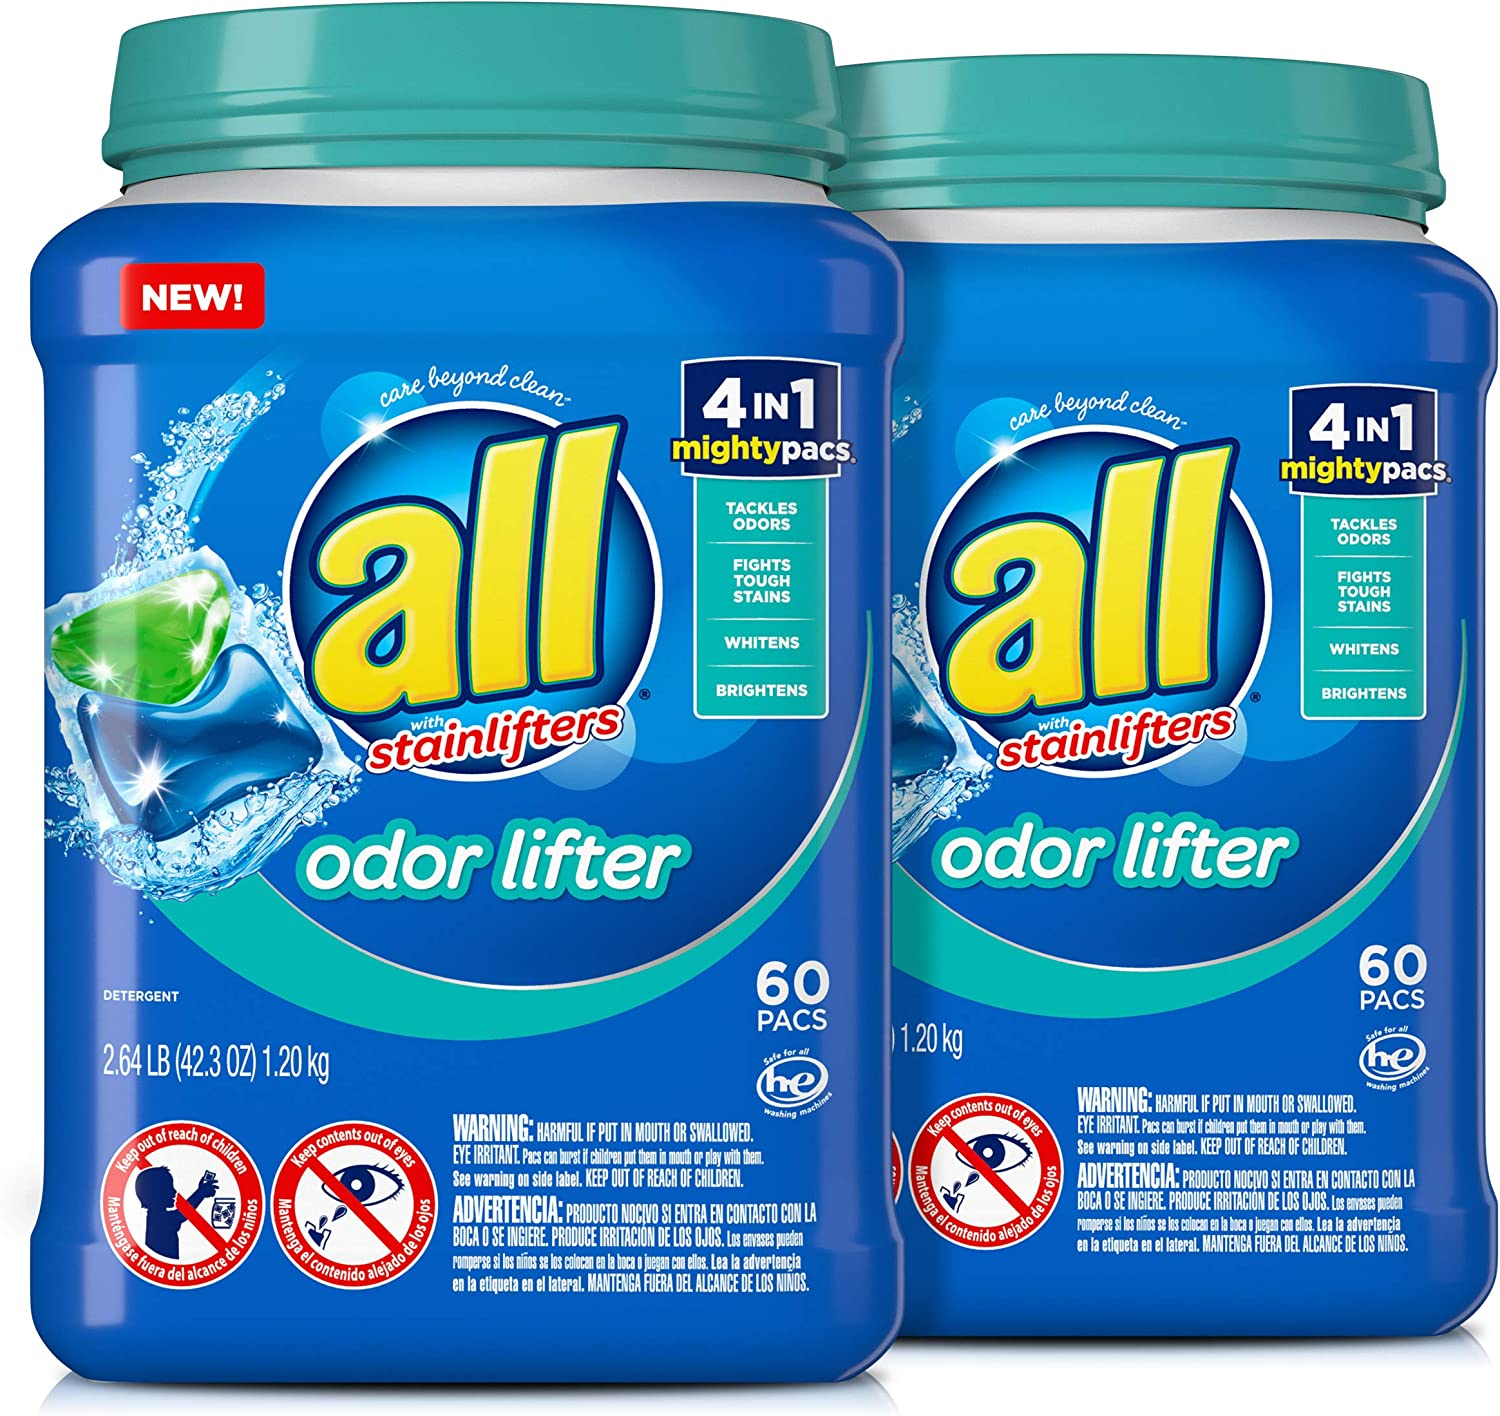 all Mighty Pacs Laundry Detergent, 4 in 1 with Odor Lifter, 60 Count, Pack of 2, 120 Total Loads